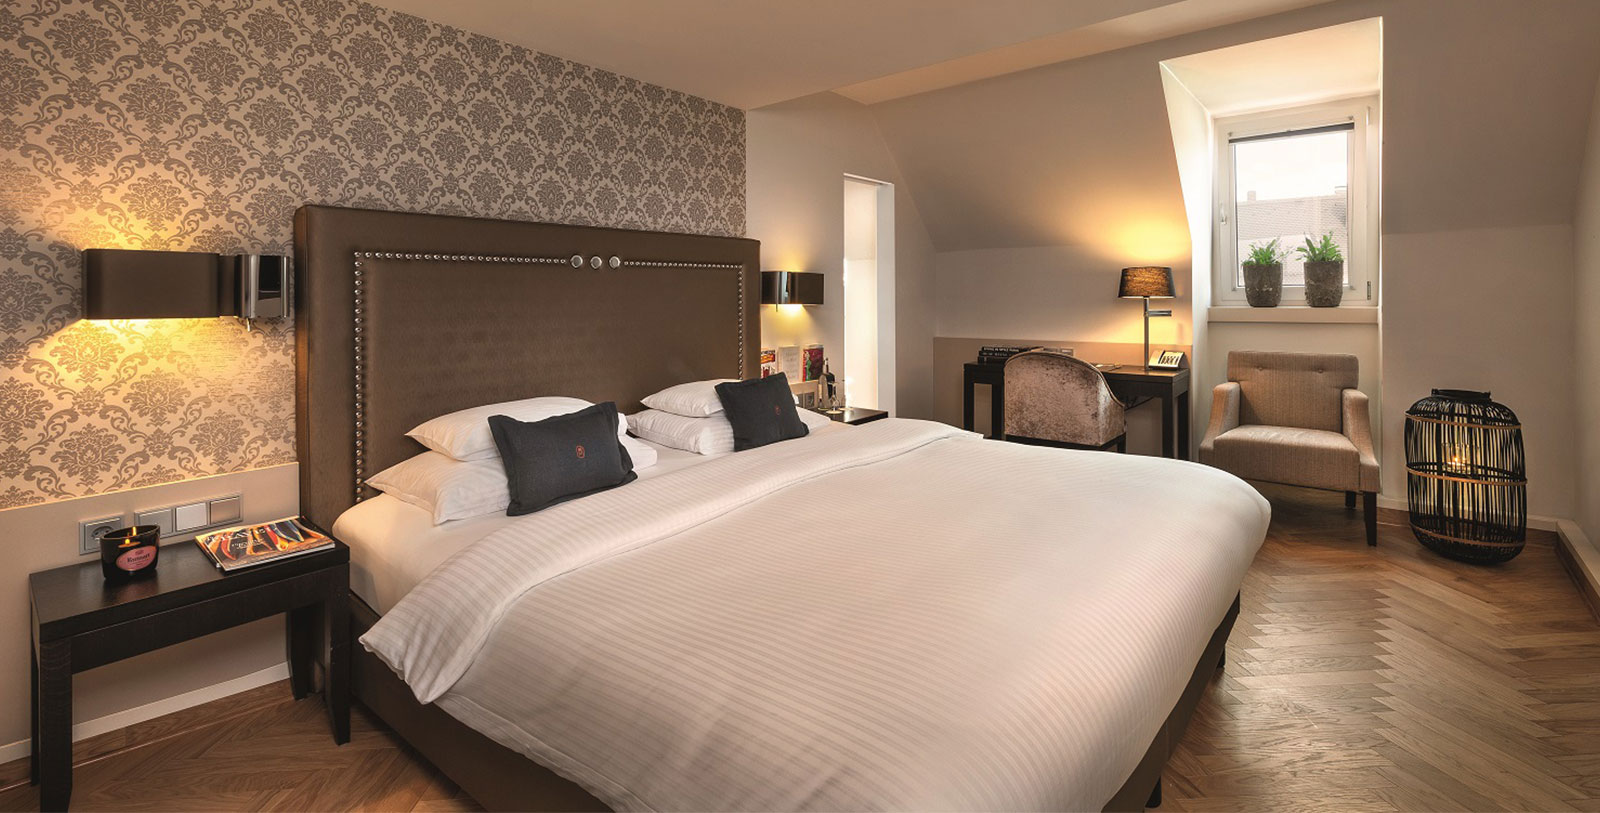 Image of Classic Room Hotel Maximilian's, 1722, Member of Historic Hotels Worldwide, in Augsburg, Germany, Accommodations